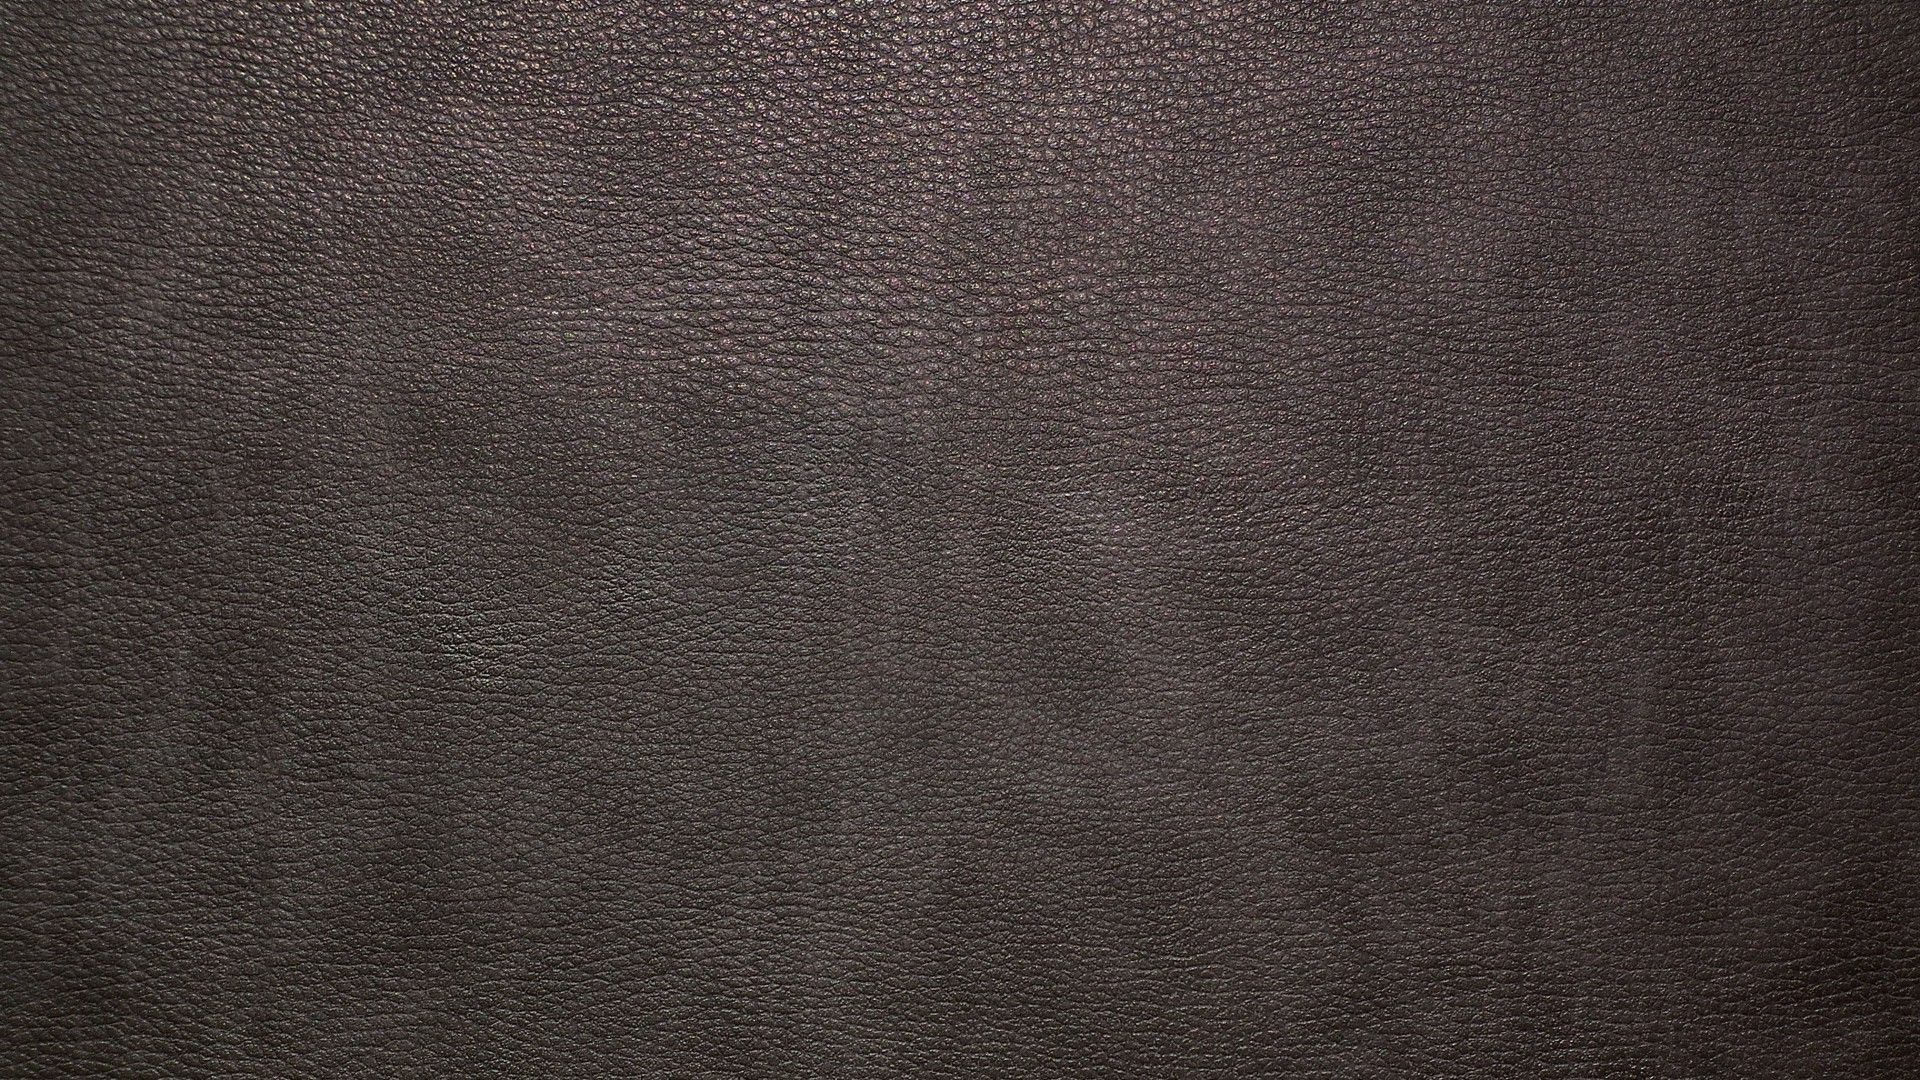 American football leather